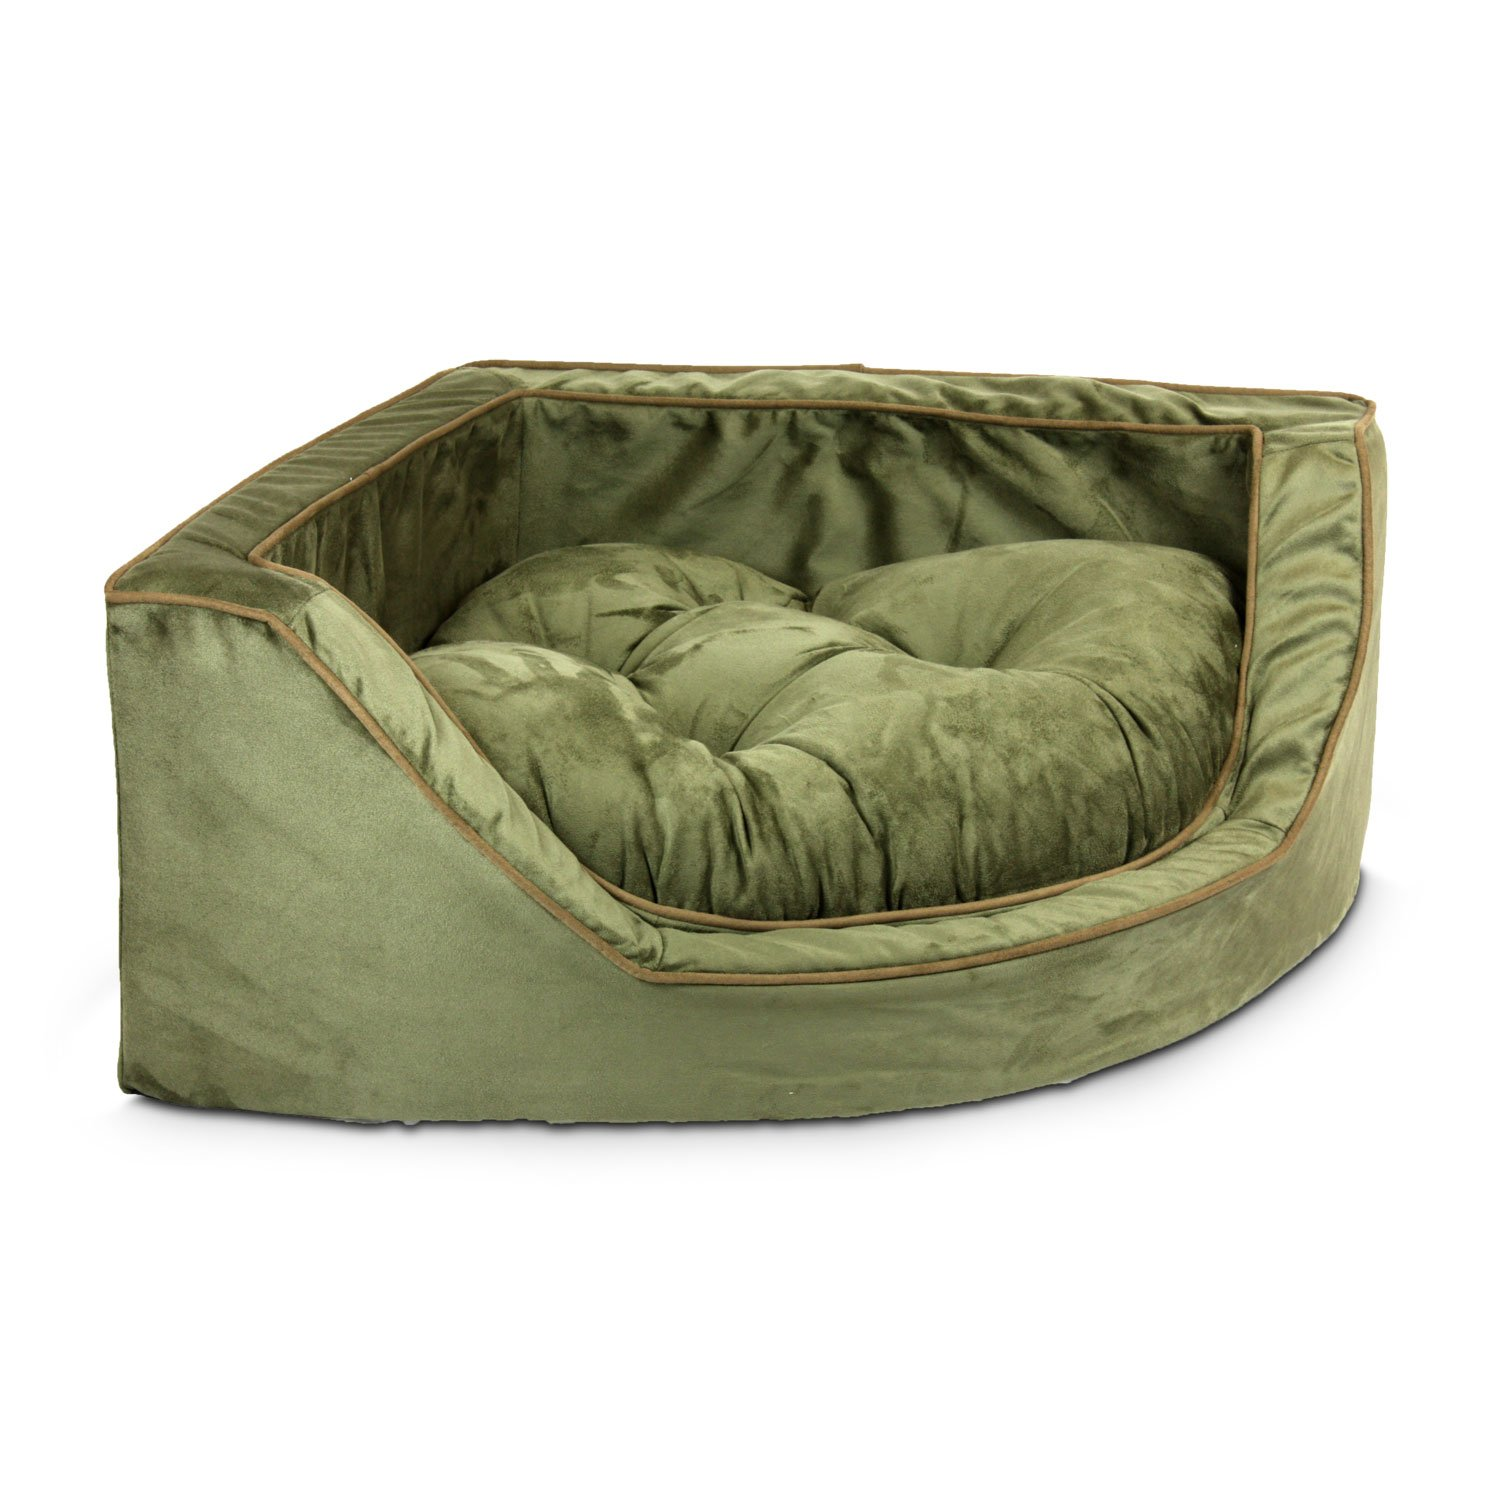 Snoozer Luxury Corner Bed in Olive with Coffee Cording